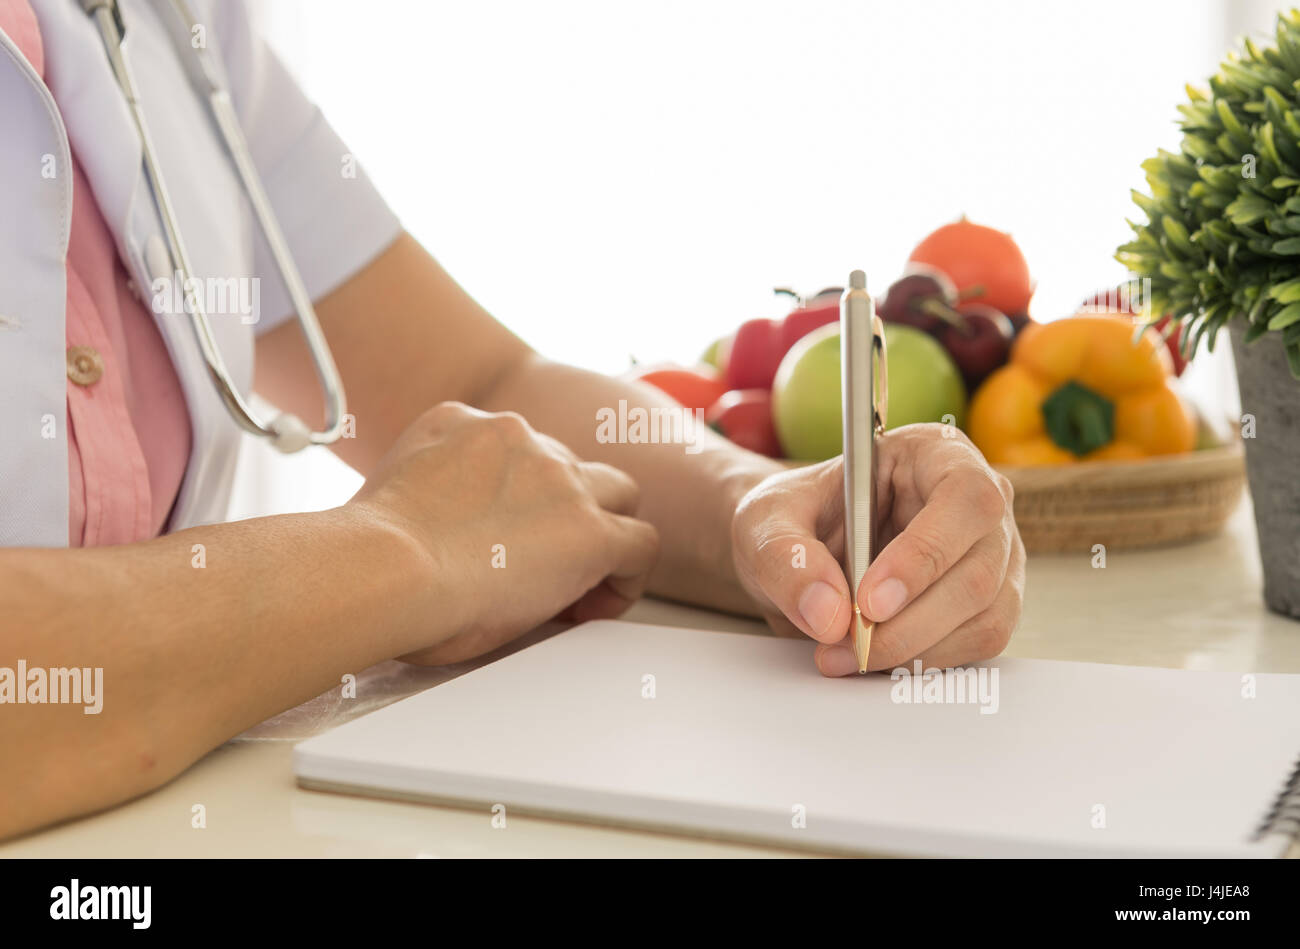 Nutritionists are health care plan for the patient. - Stock Image